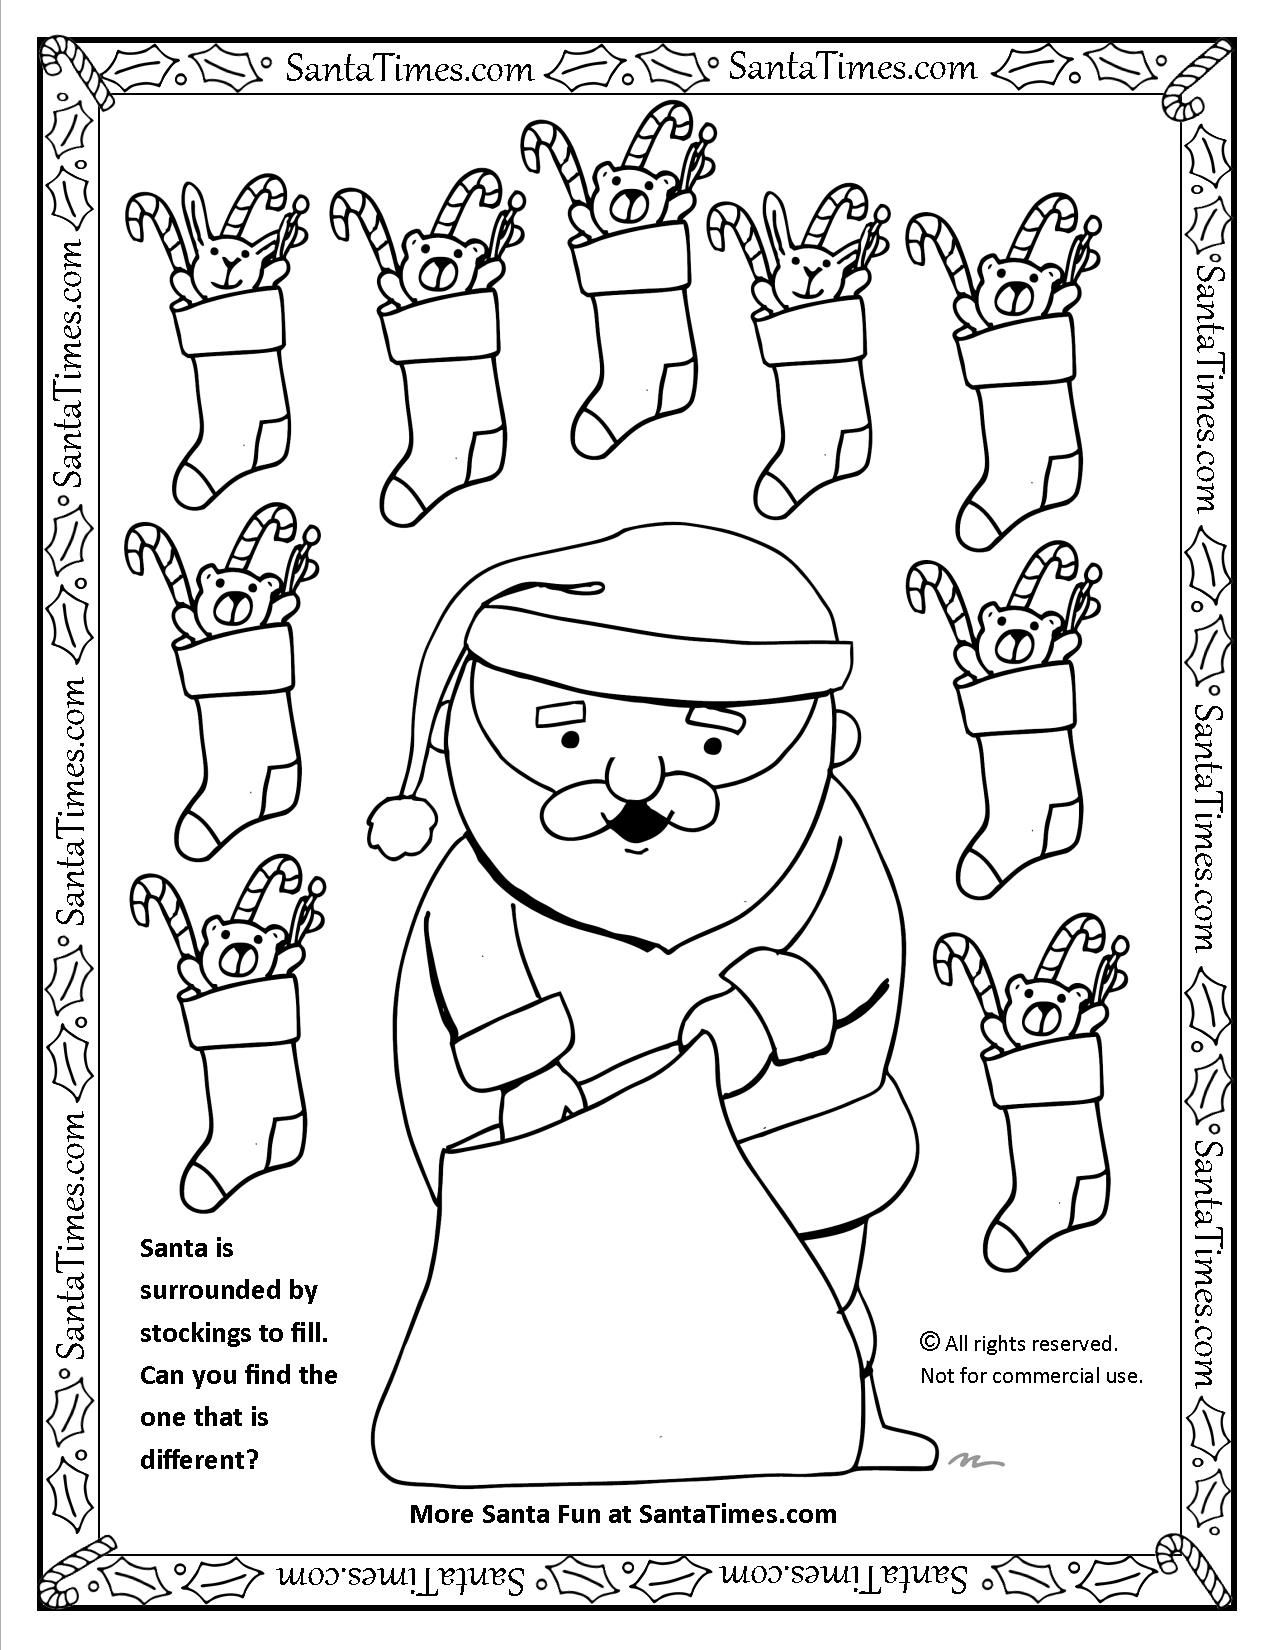 Santa Fills Stockings Christmas Activity And Printable